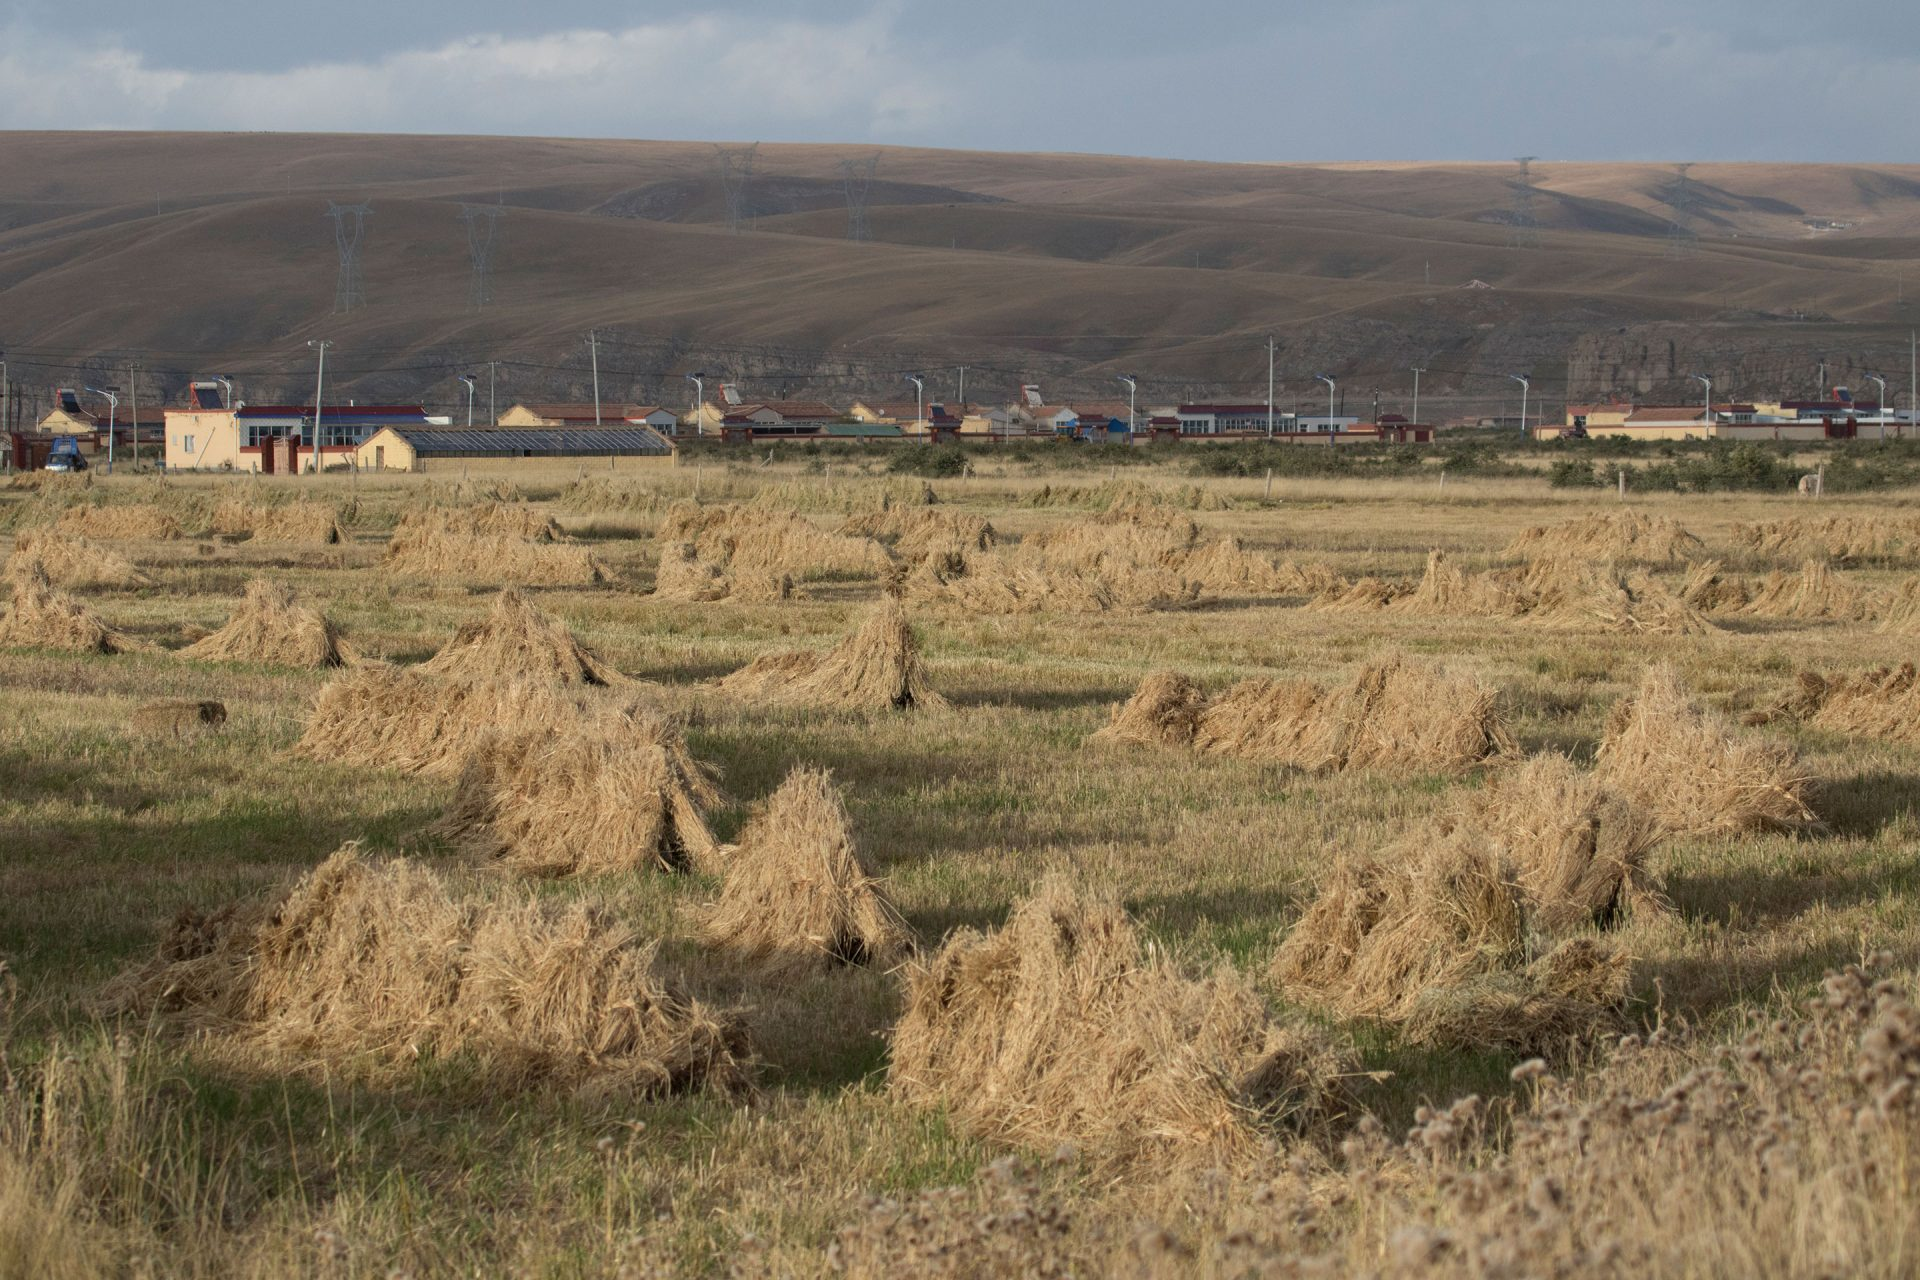 Grass drying on the outskirts of town near Qinghai Lake